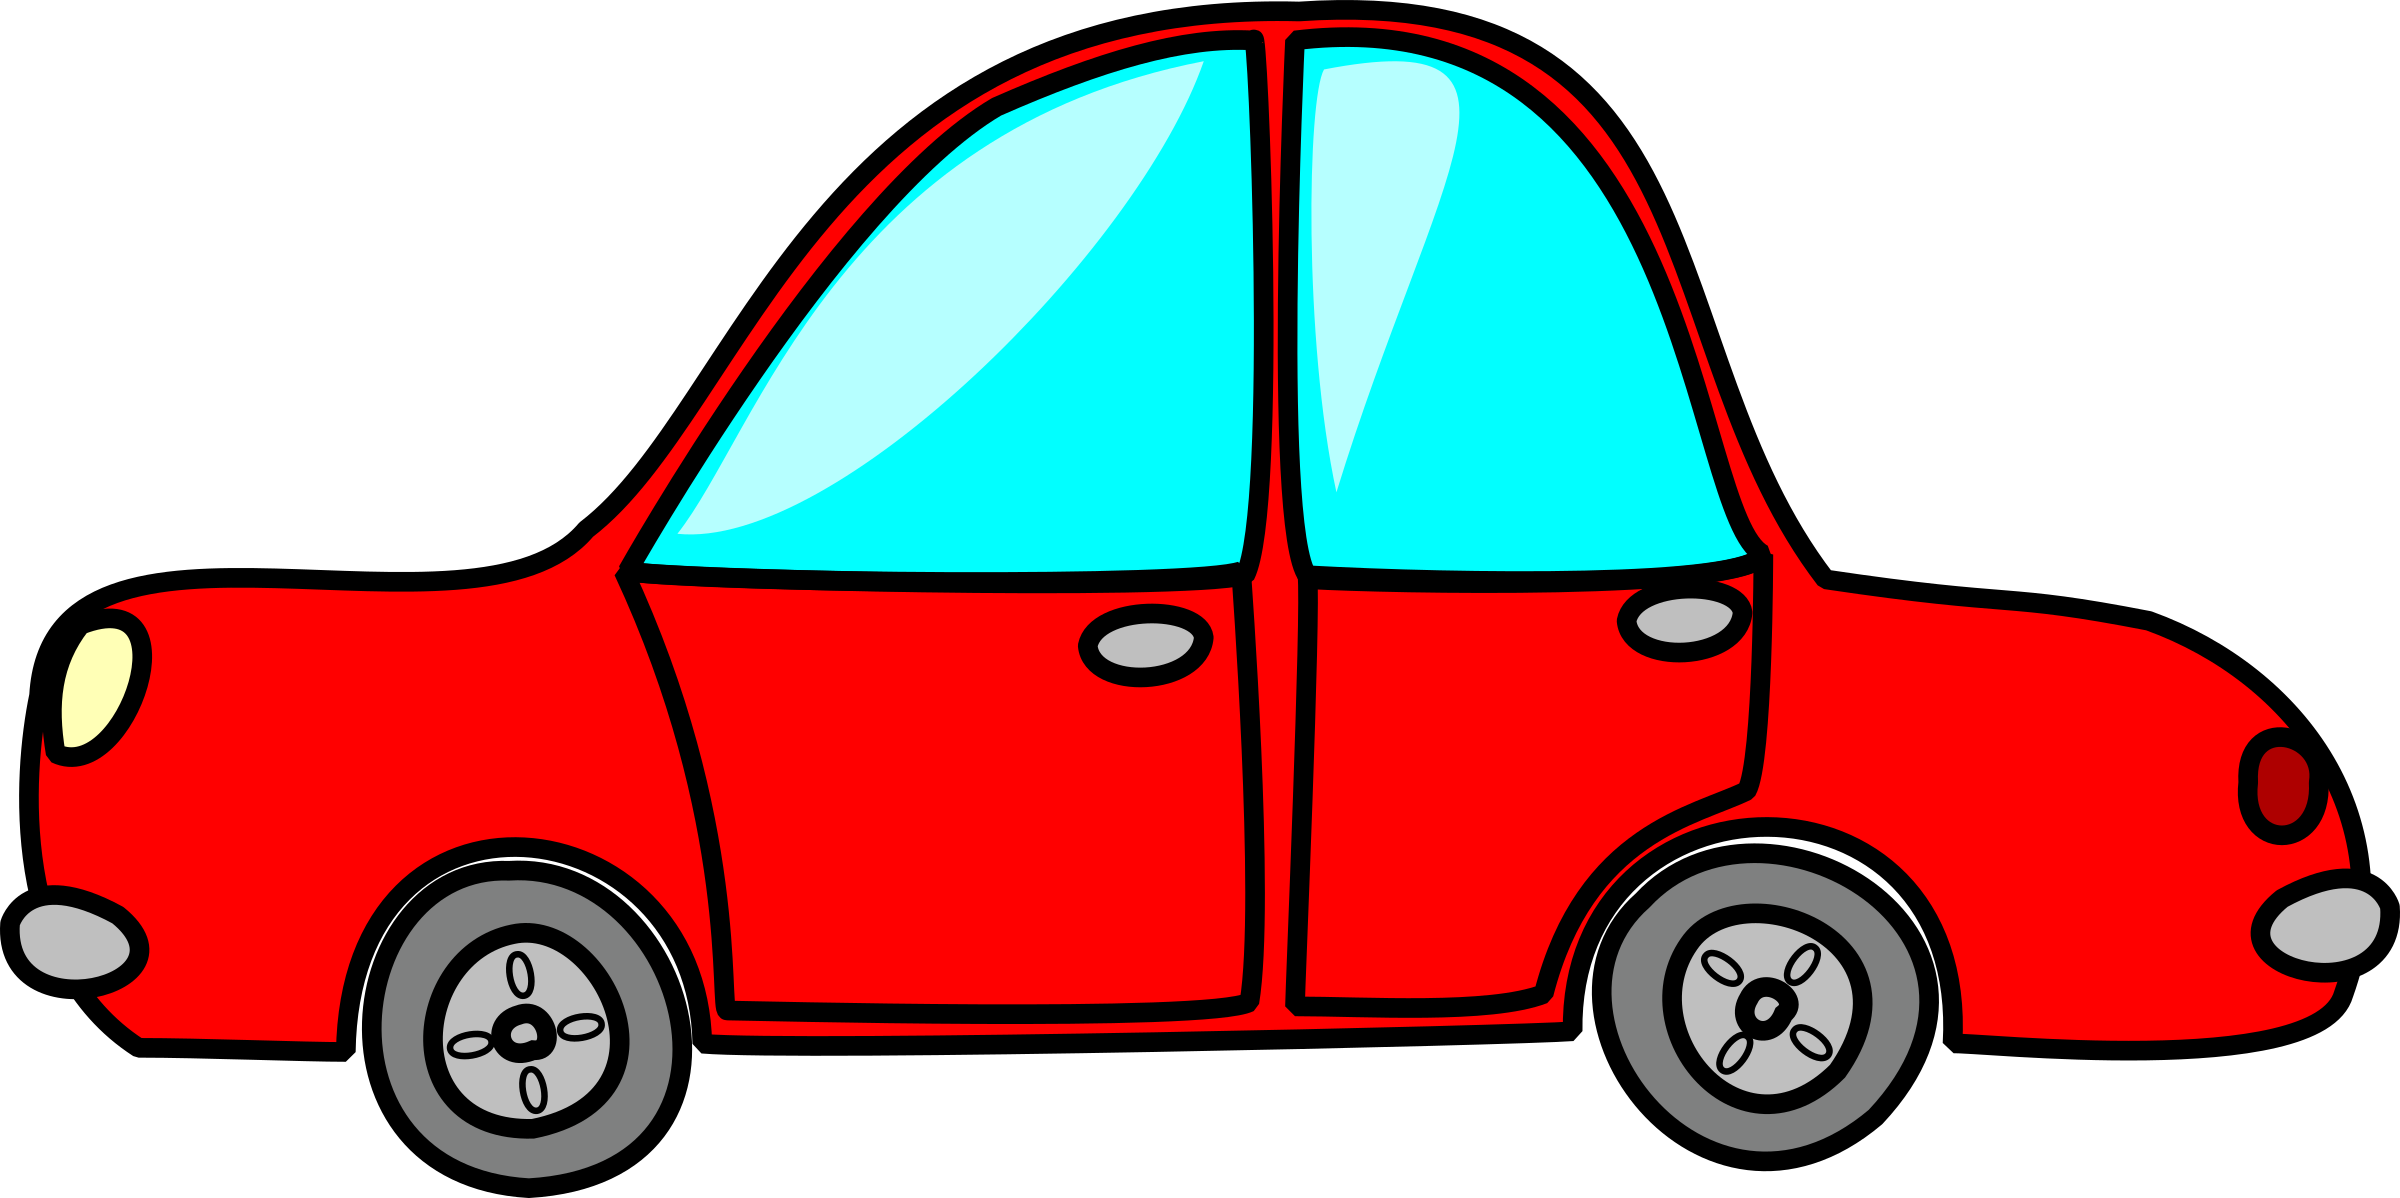 Toy Car PNG Free Transparent Toy Car.PNG Images..